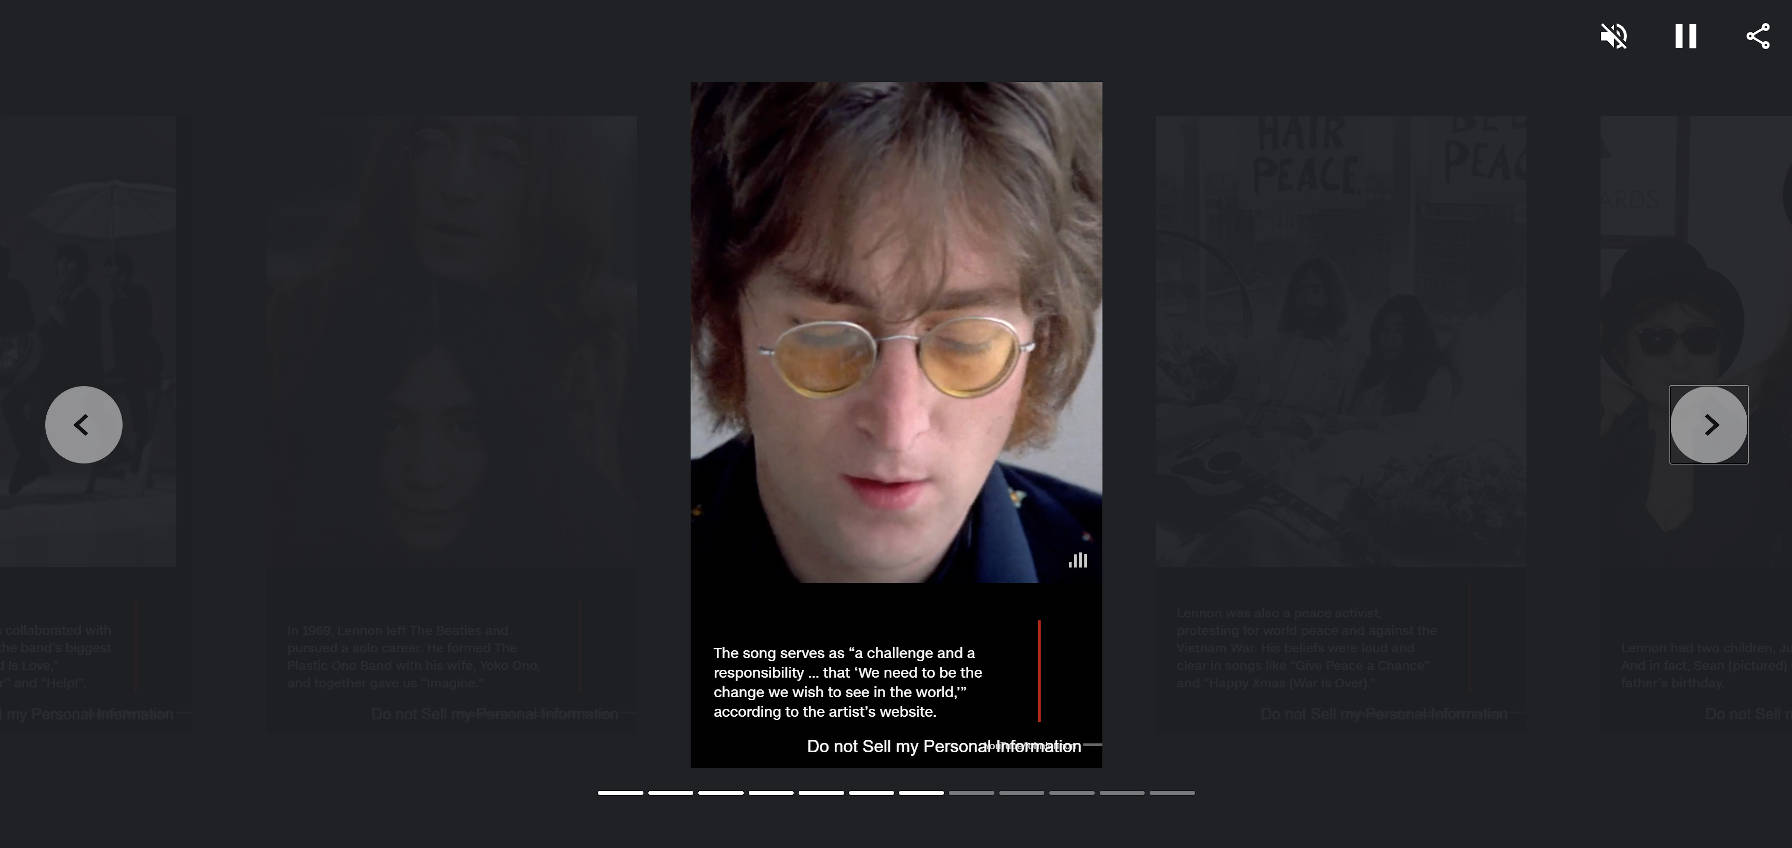 Web Story page from CNN's coverage of John Lennon.